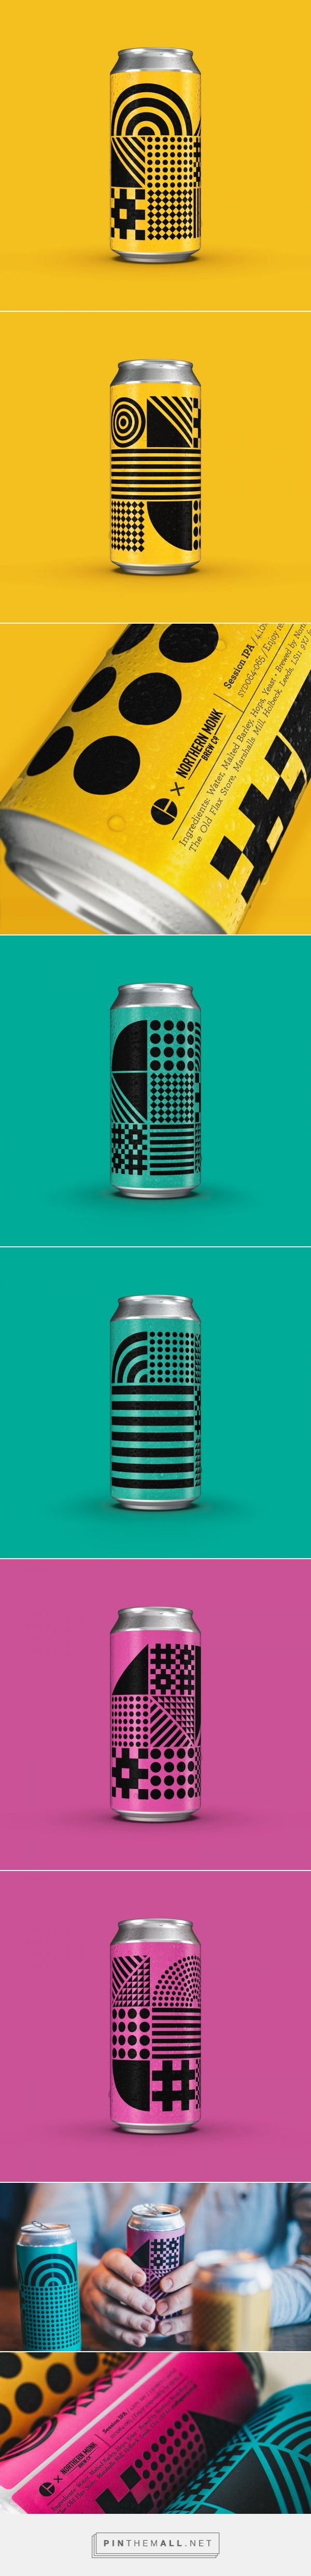 Craft Recruitment Beer packaging design by Ollie Langridge - http://www.packagingoftheworld.com/2017/12/craft-recruitment-beer.html